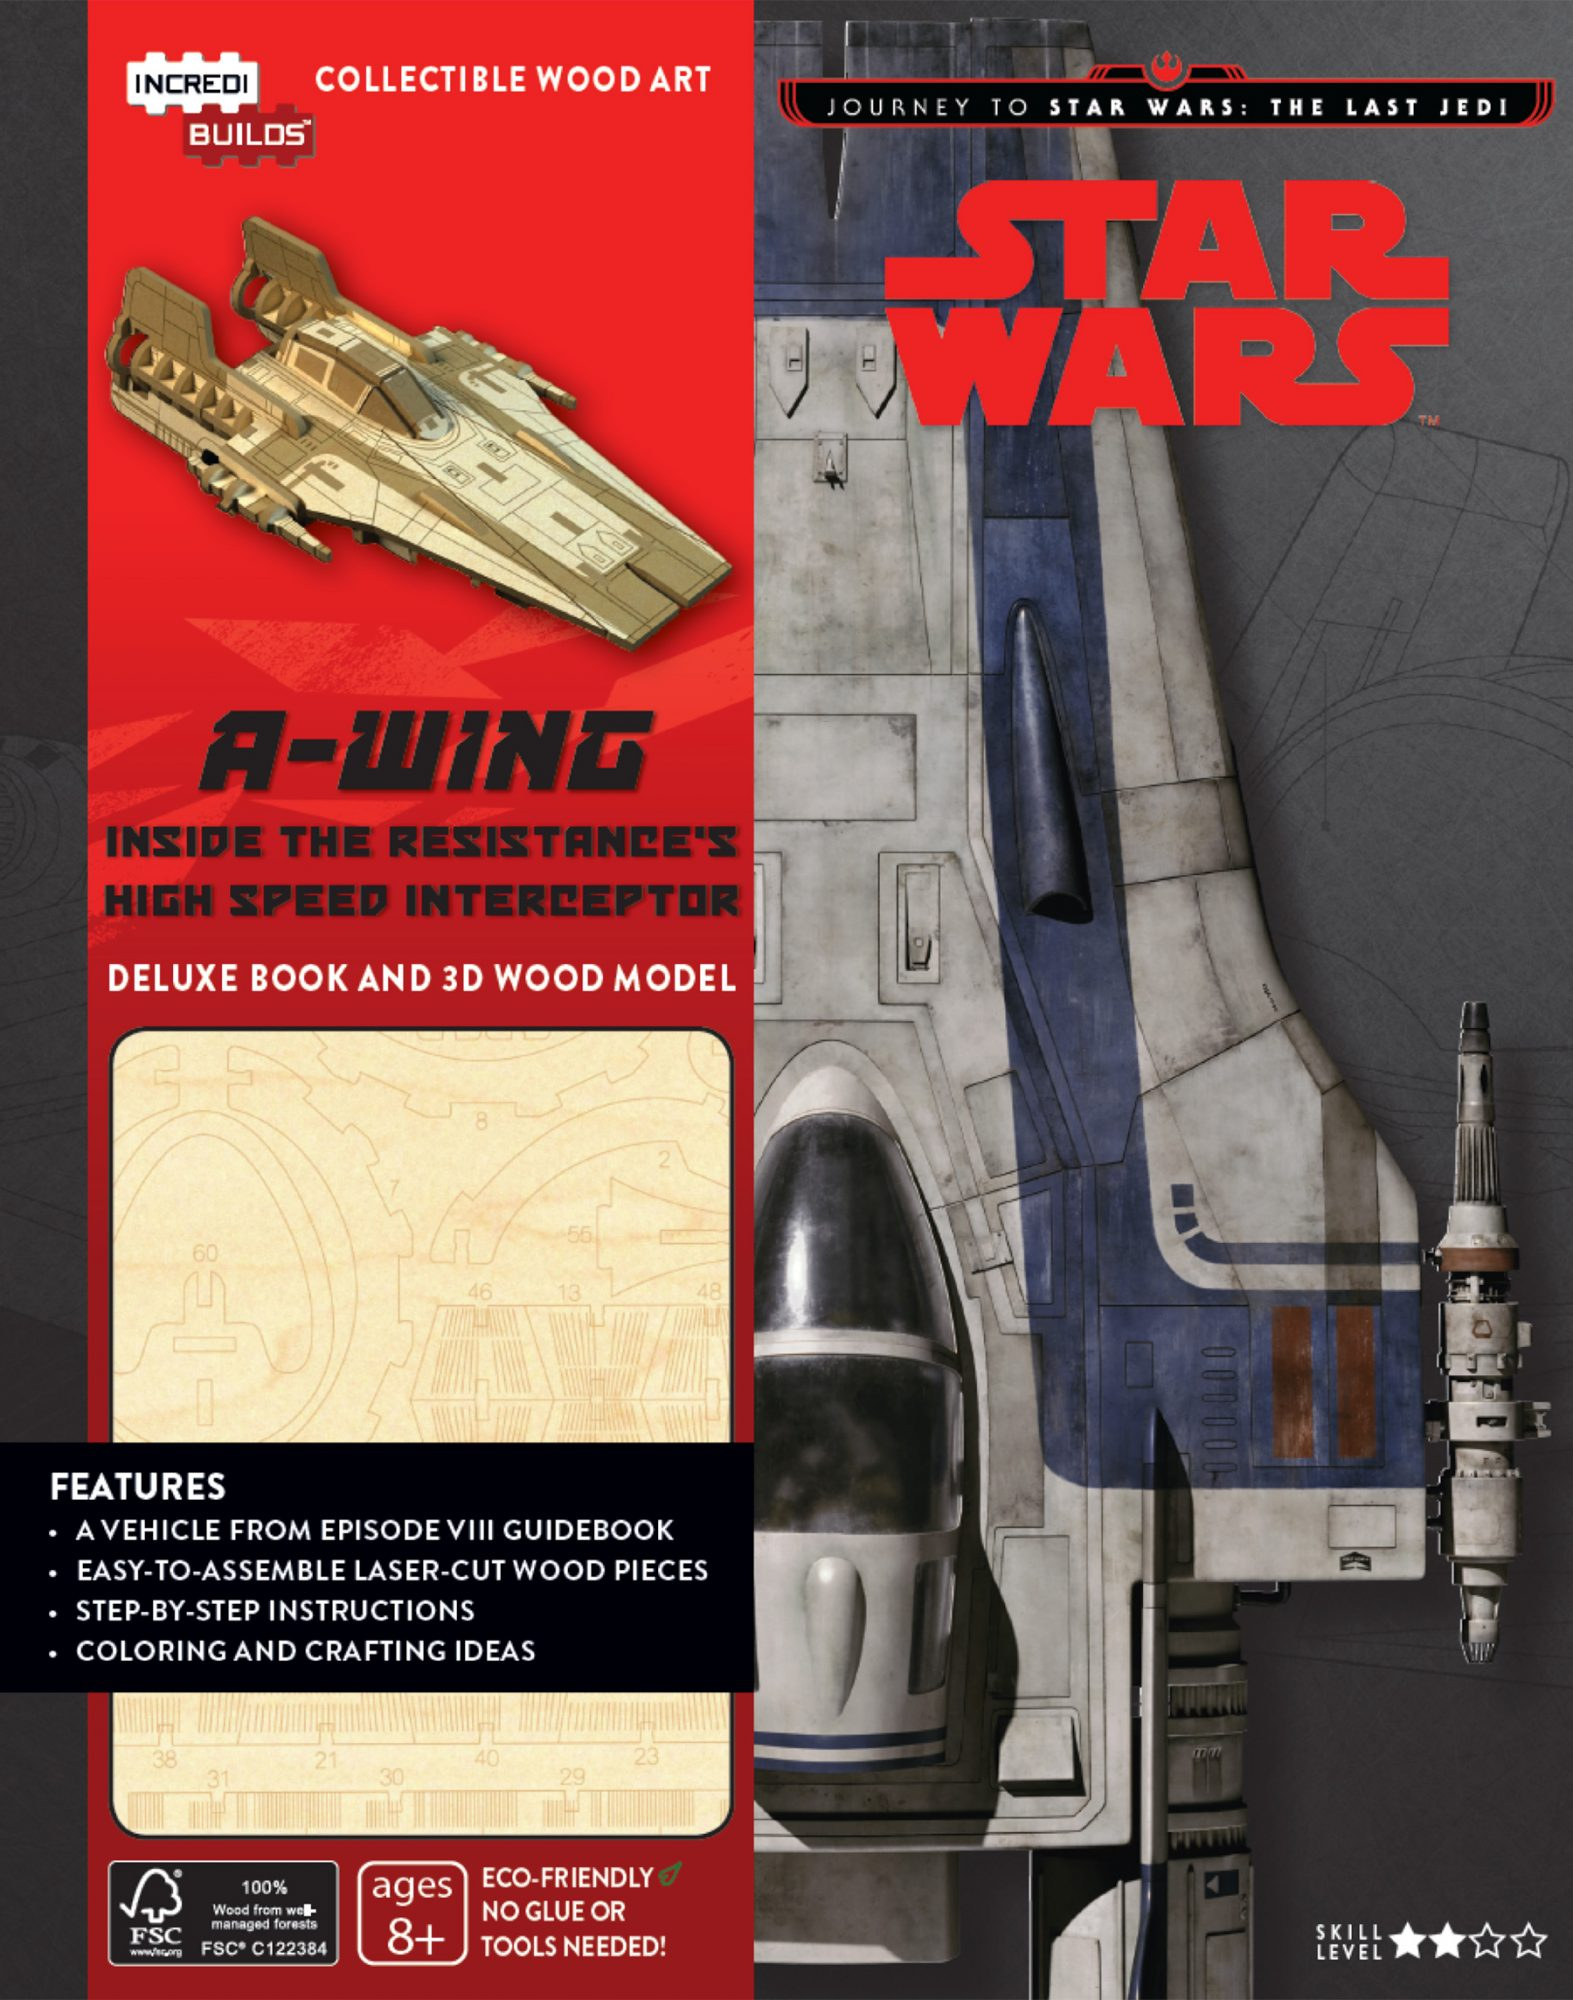 The Last Jedi - A-wing IncrediBuild, by Michael Kogge